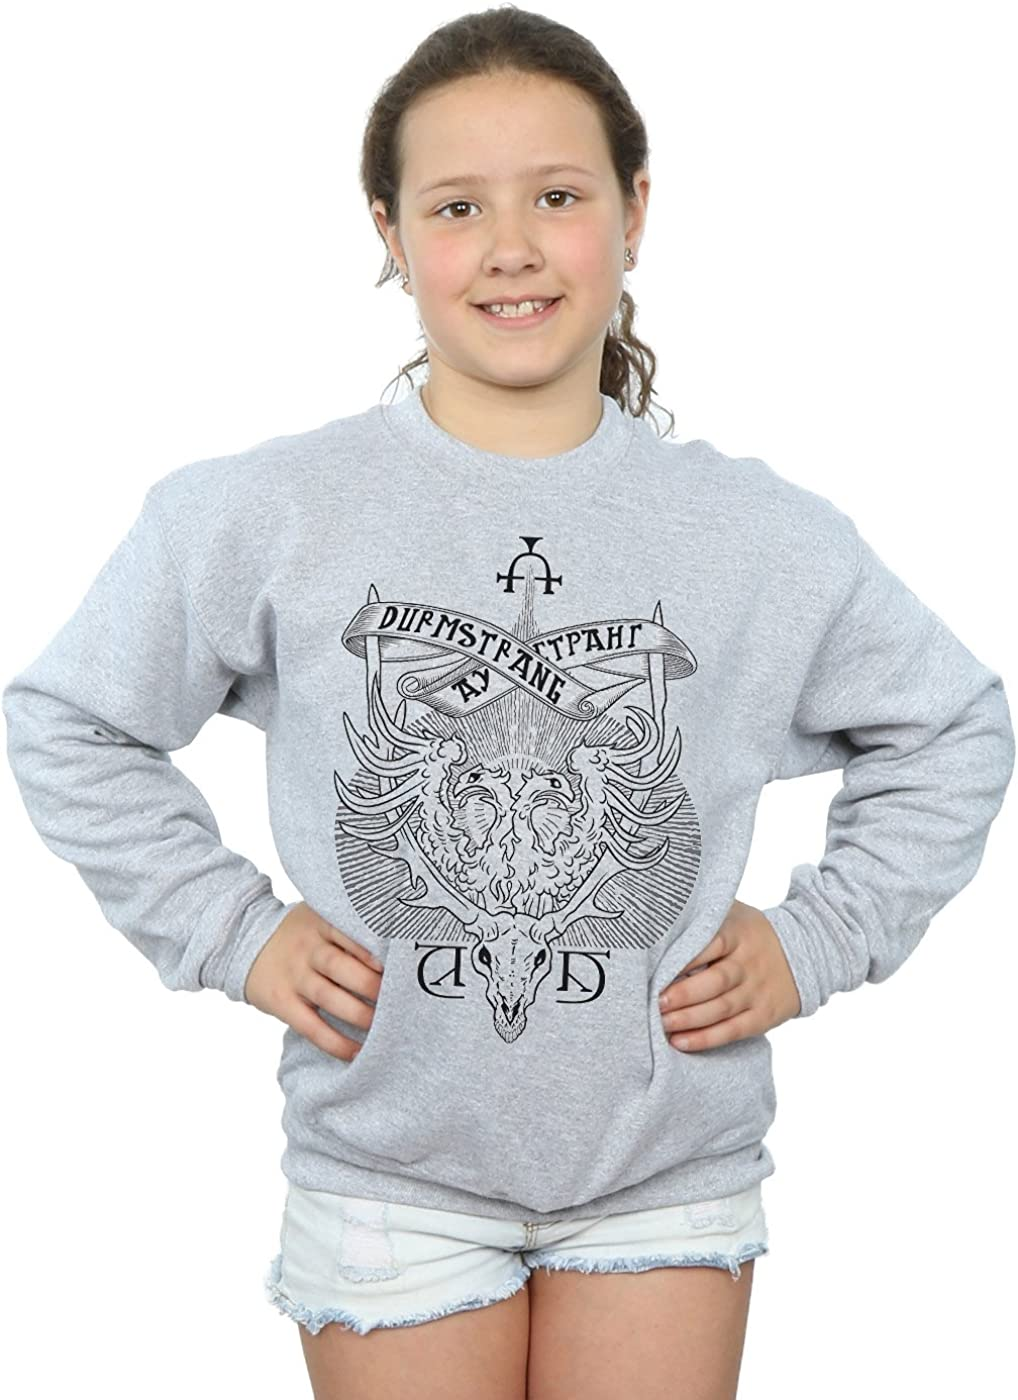 Harry Potter Girls Durmstrang Institute Crest Sweatshirt Amazon Co Uk Clothing She's the youngest seer in europe in over. amazon co uk